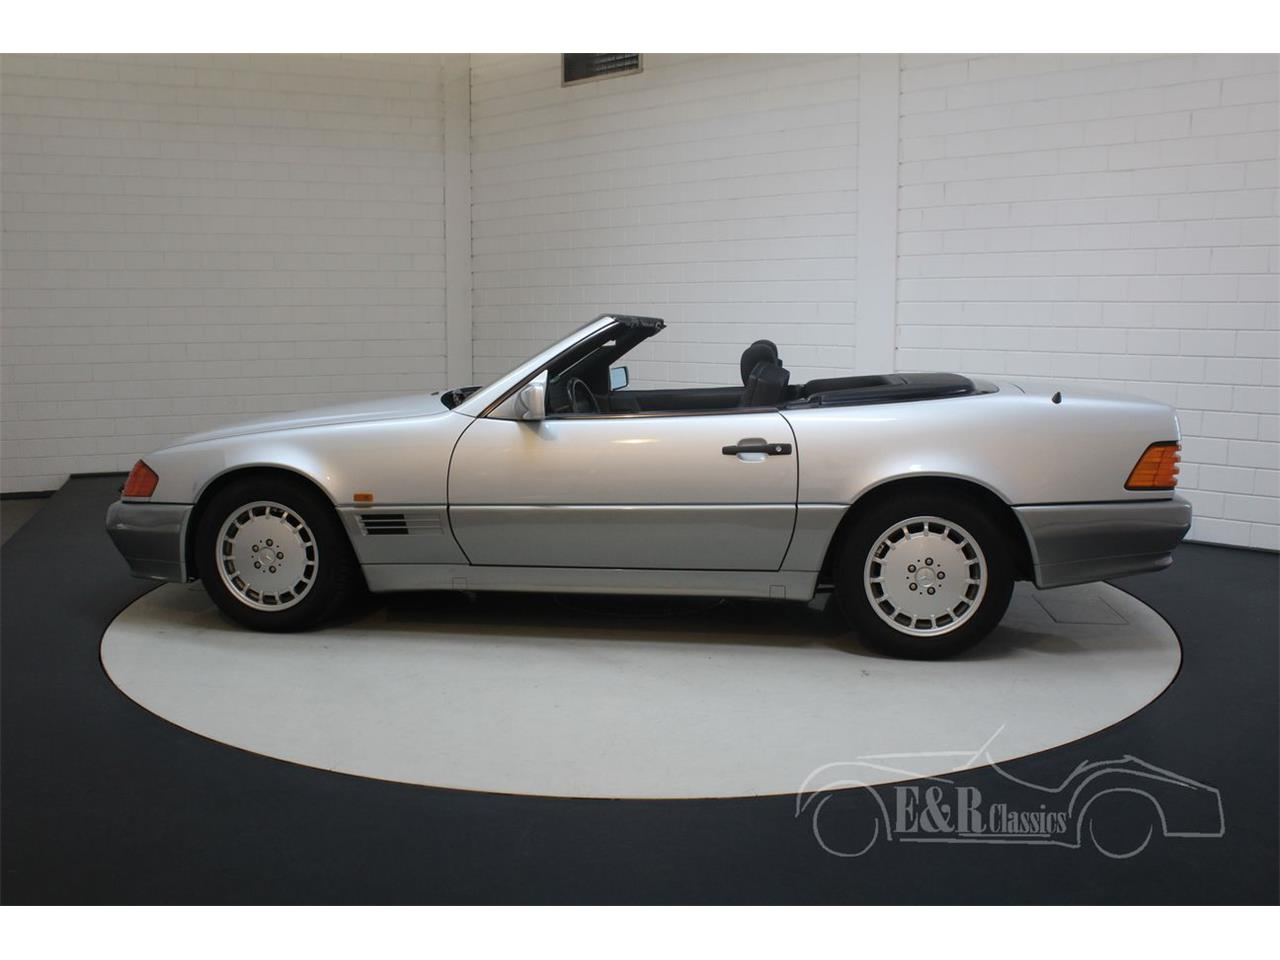 Large Picture of 1991 Mercedes-Benz 500SL located in noord brabant - $22,350.00 Offered by E & R Classics - Q33D